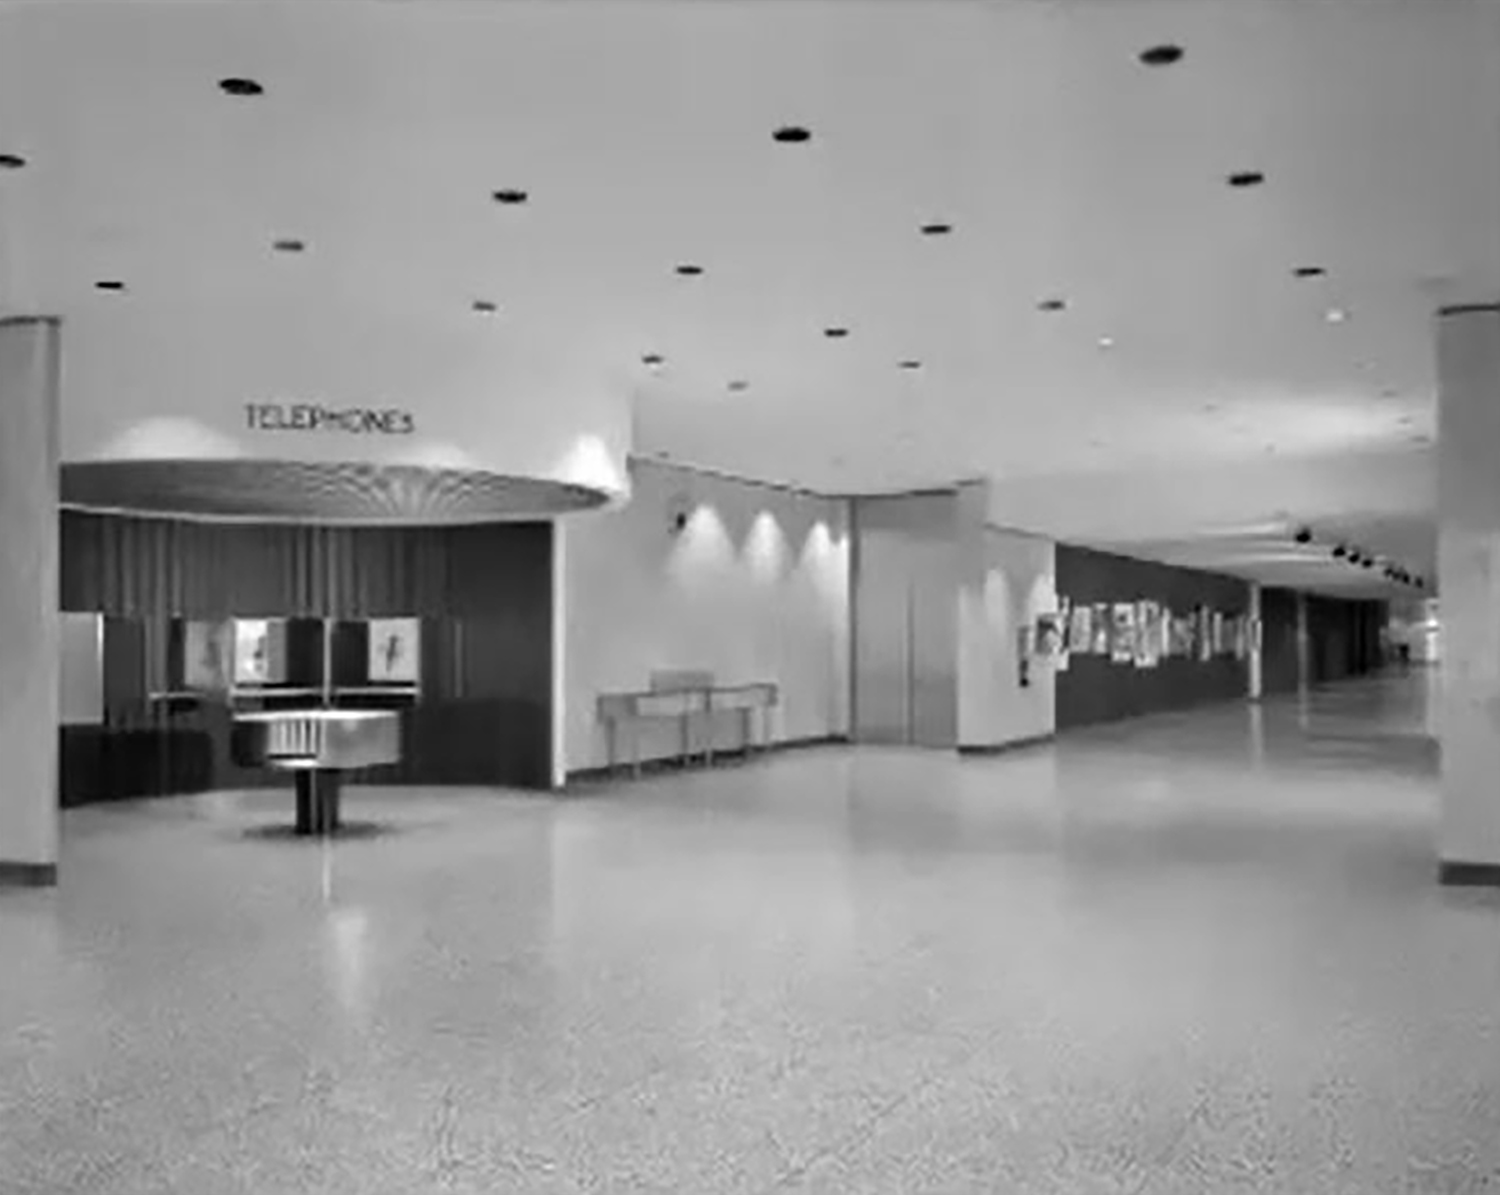 Illinois Bell Building Lobby circa 1966. Image by Chicago History Museum